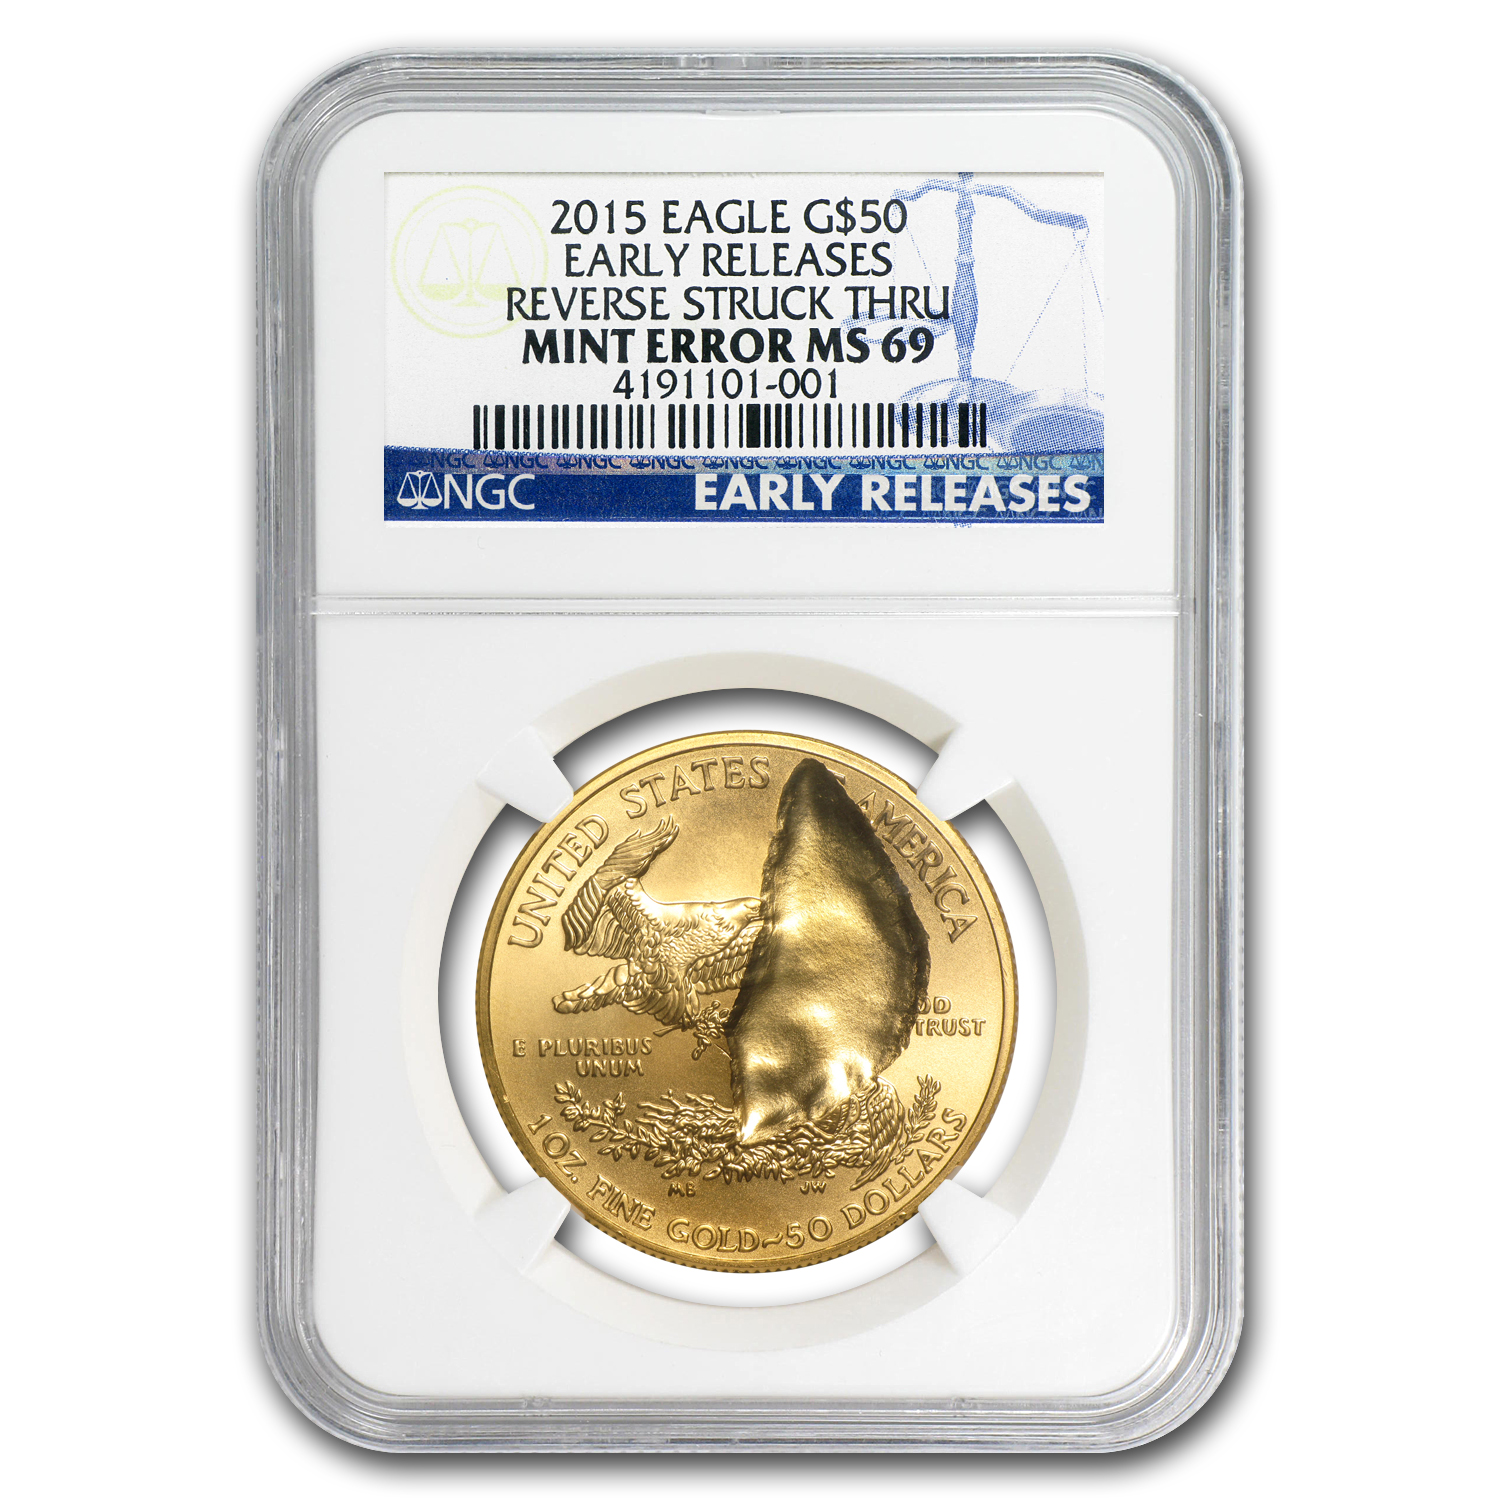 2015 1 oz Gold Eagle Major Mint Error NGC MS-69 (Early Releases)